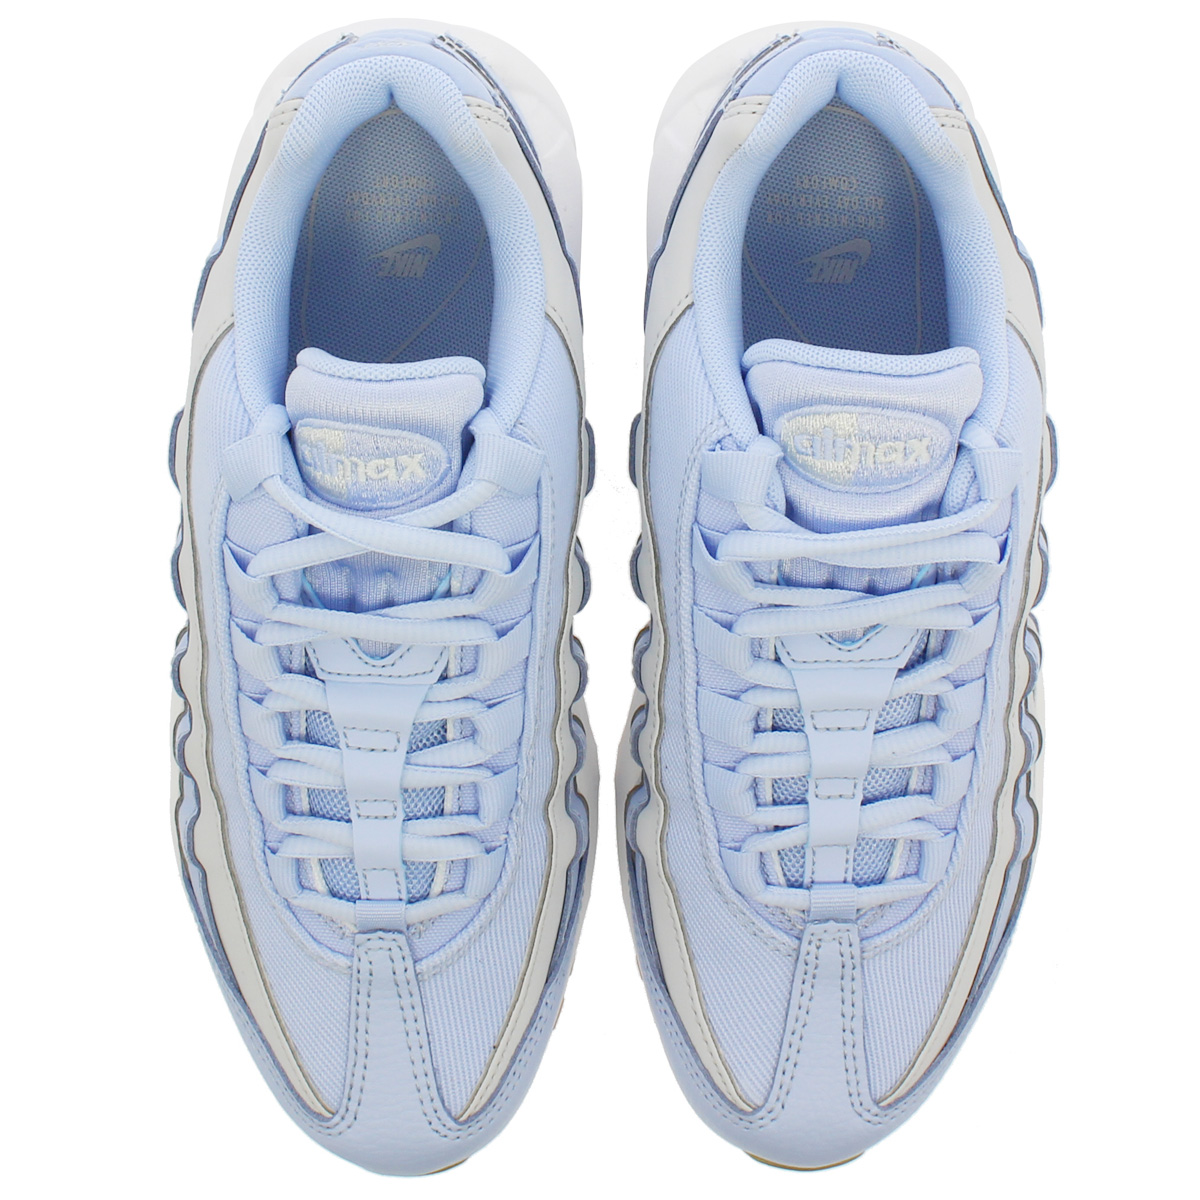 Nike Air Max 95 Shoes Light BlueGrey | 307960 403